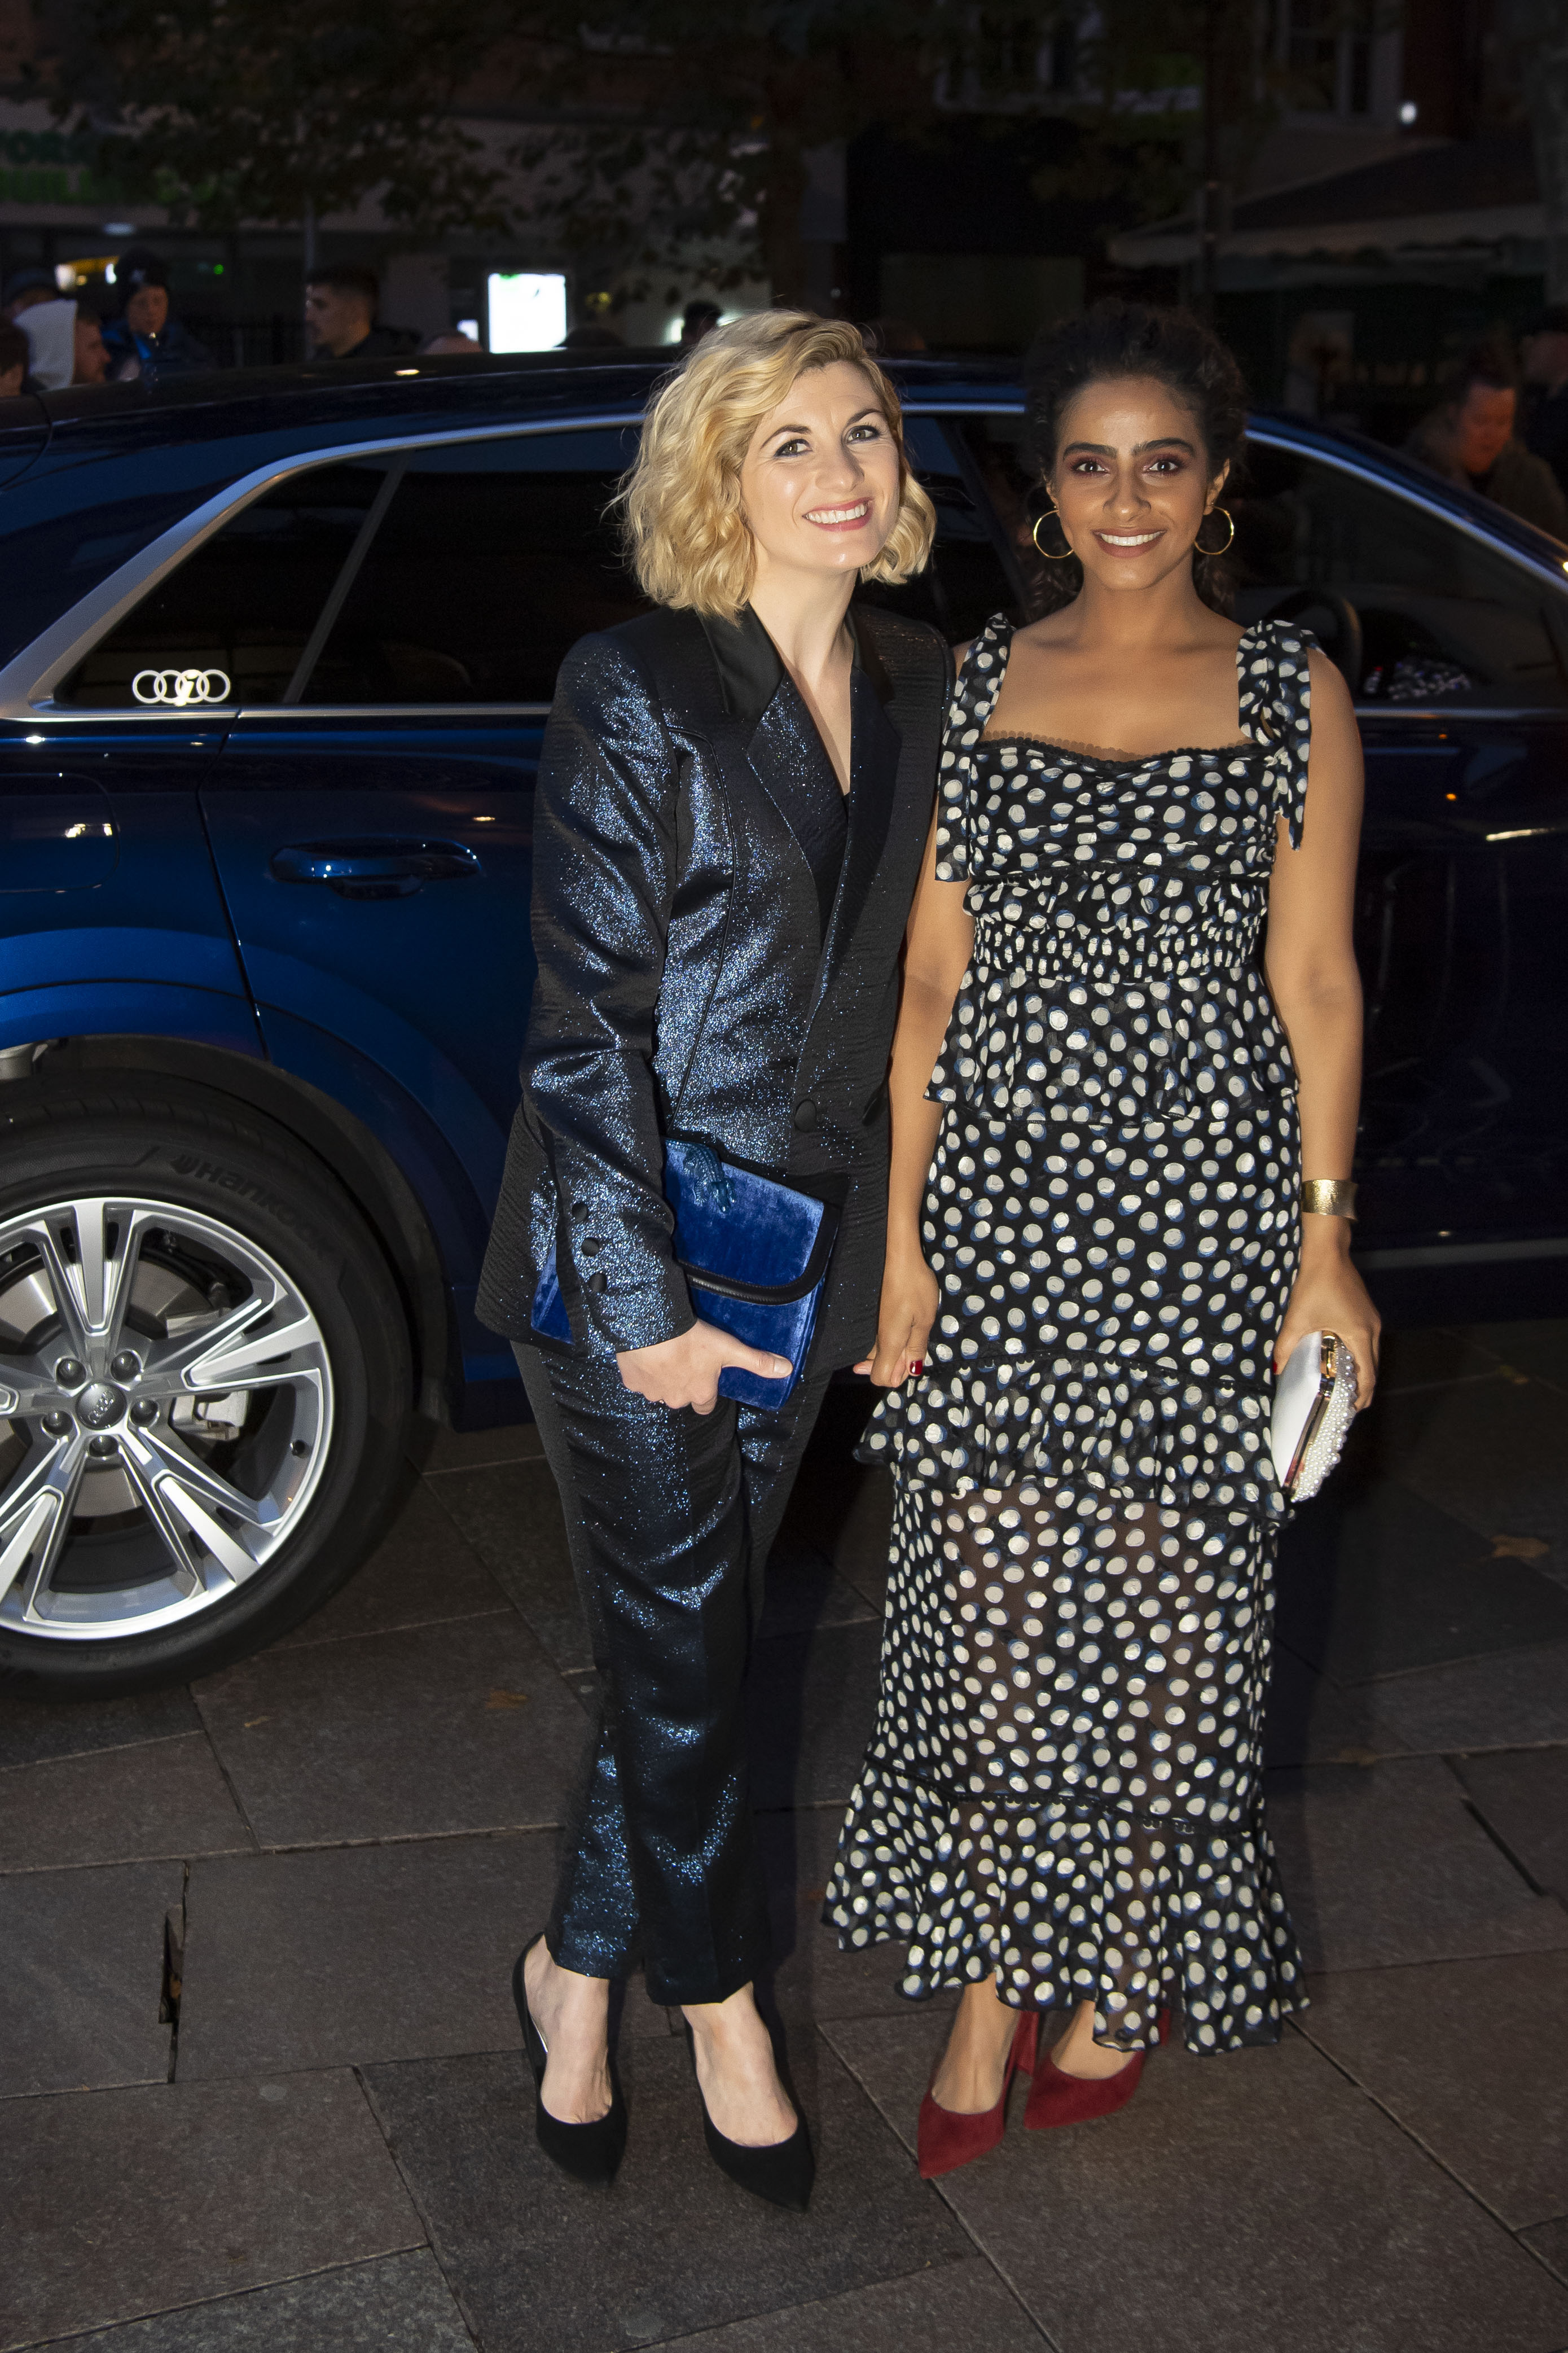 Jodie-Whittaker-Mandip-Gill-arrive-in-an-Audi-at-the-British-Academy-Cymru-Awards-2019-Cardiff-Sunday-13-October-2019